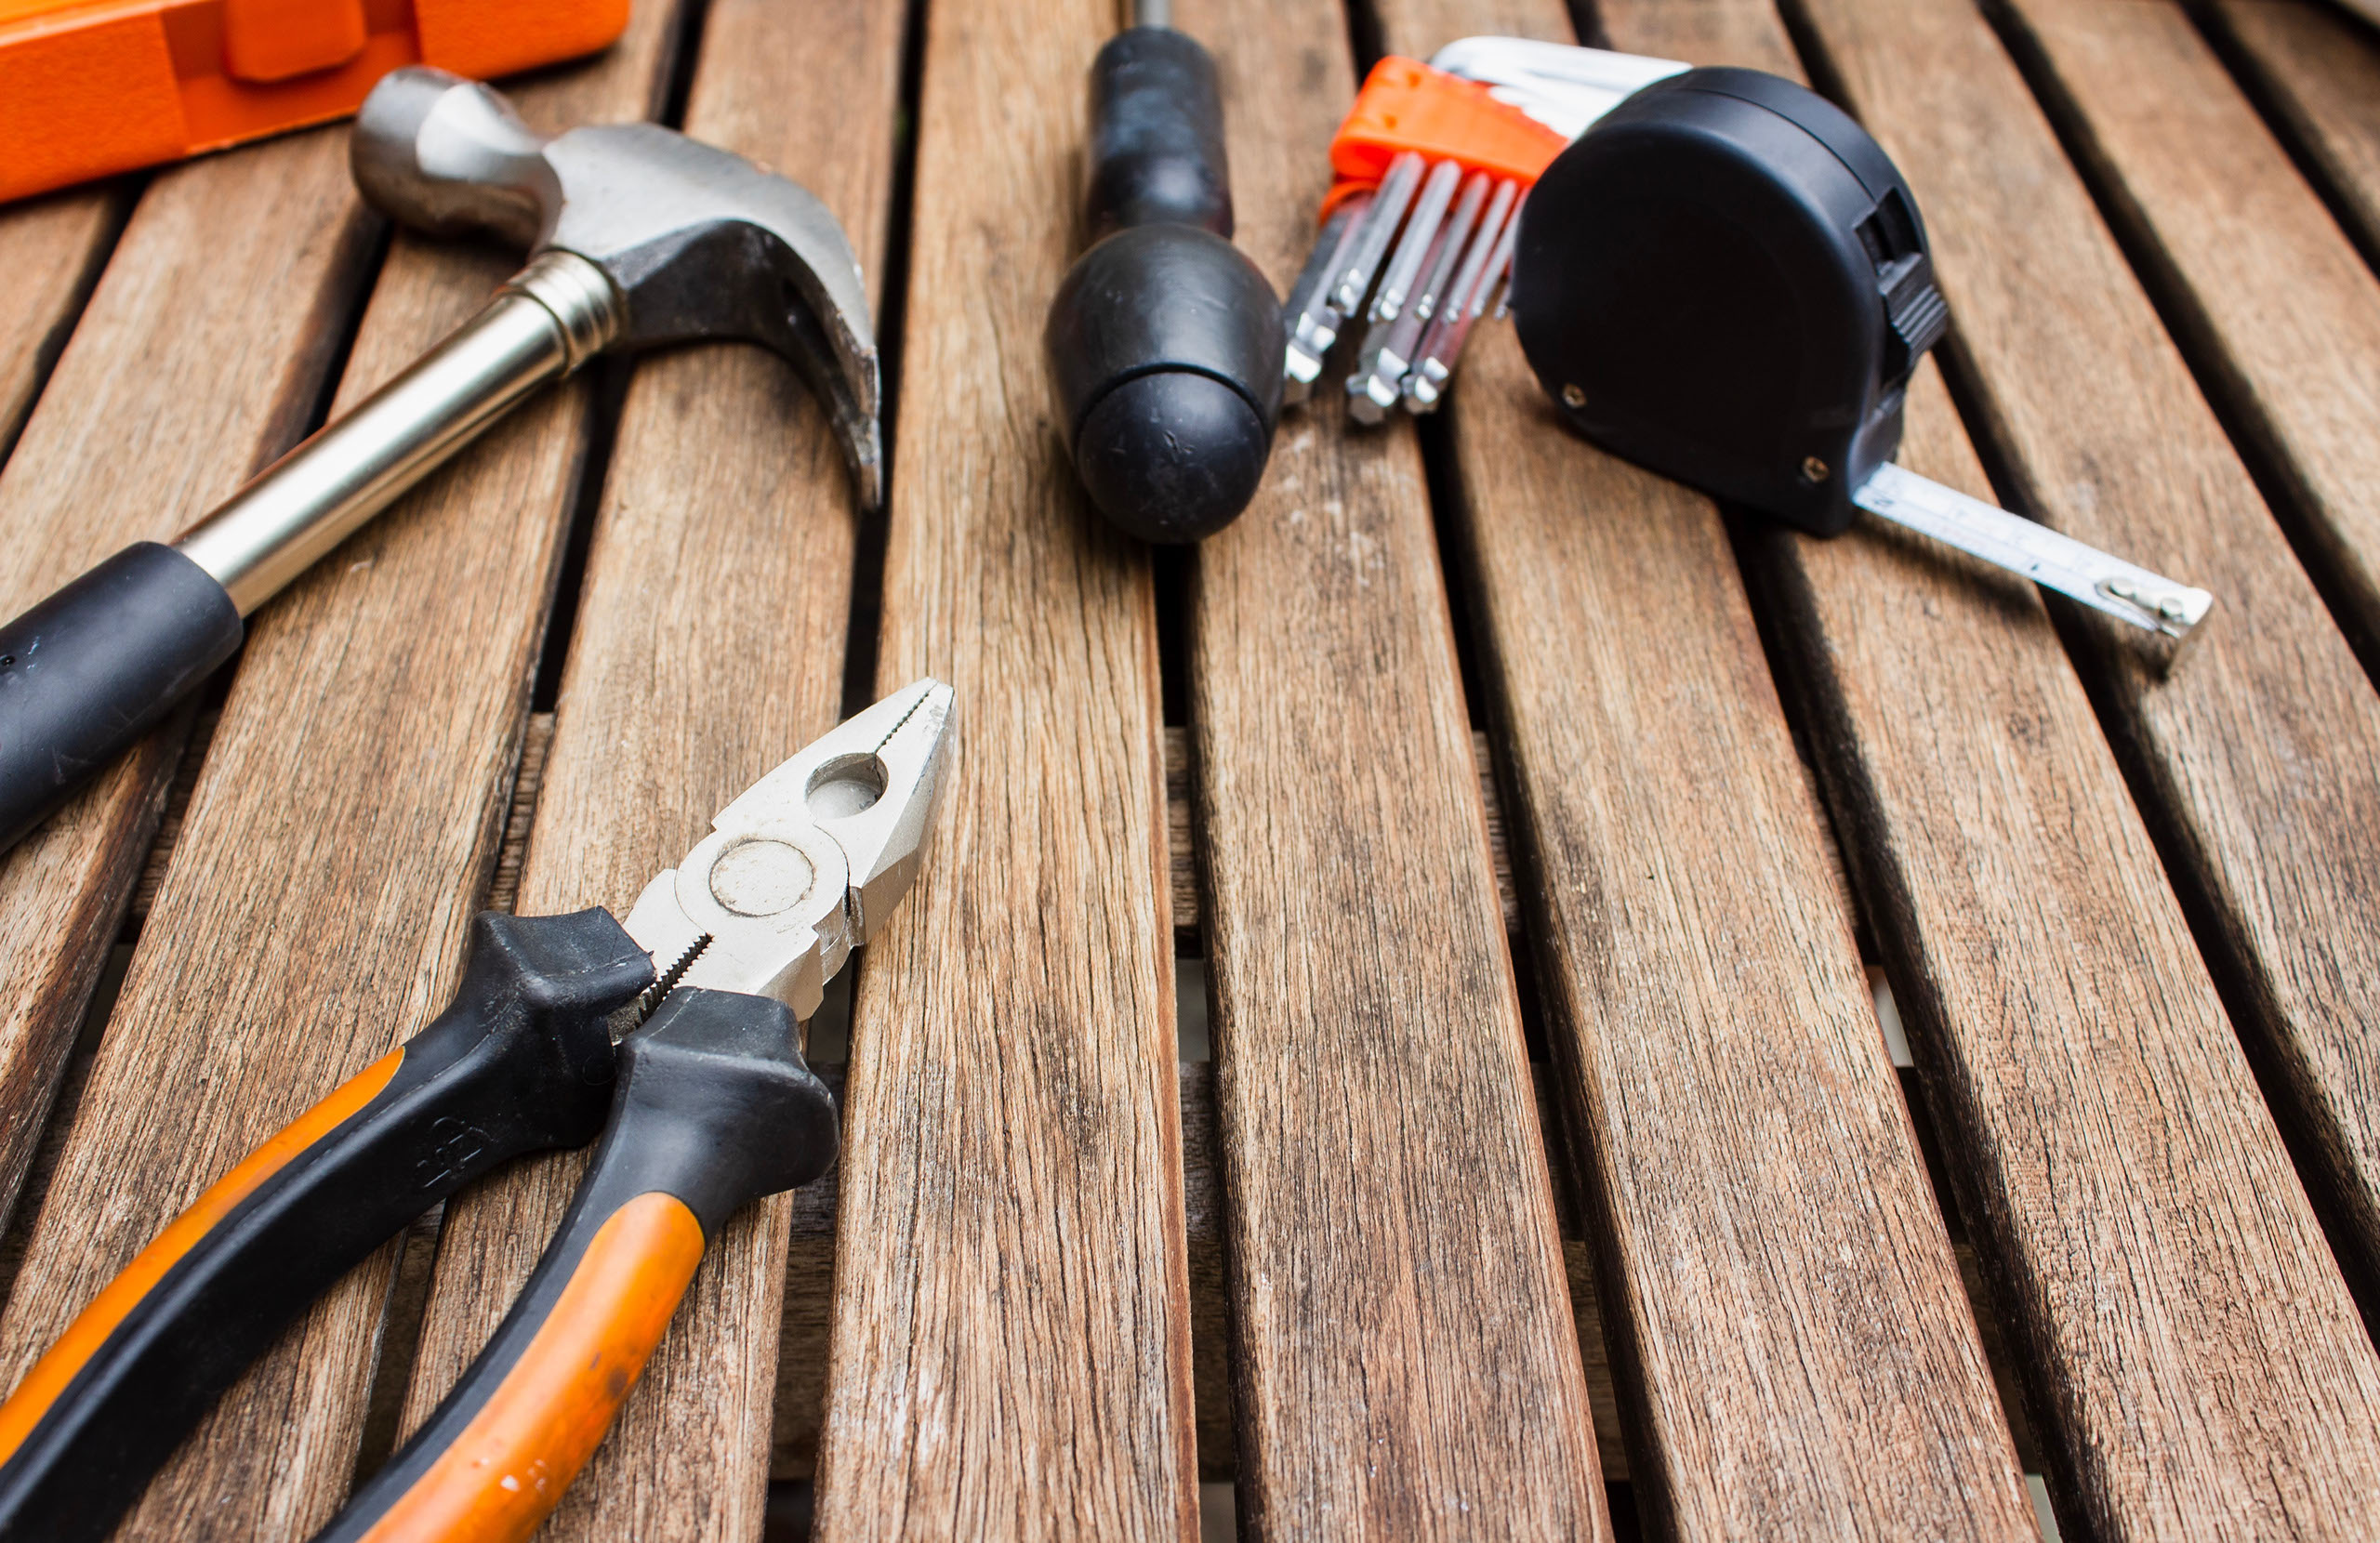 Tools on a deck